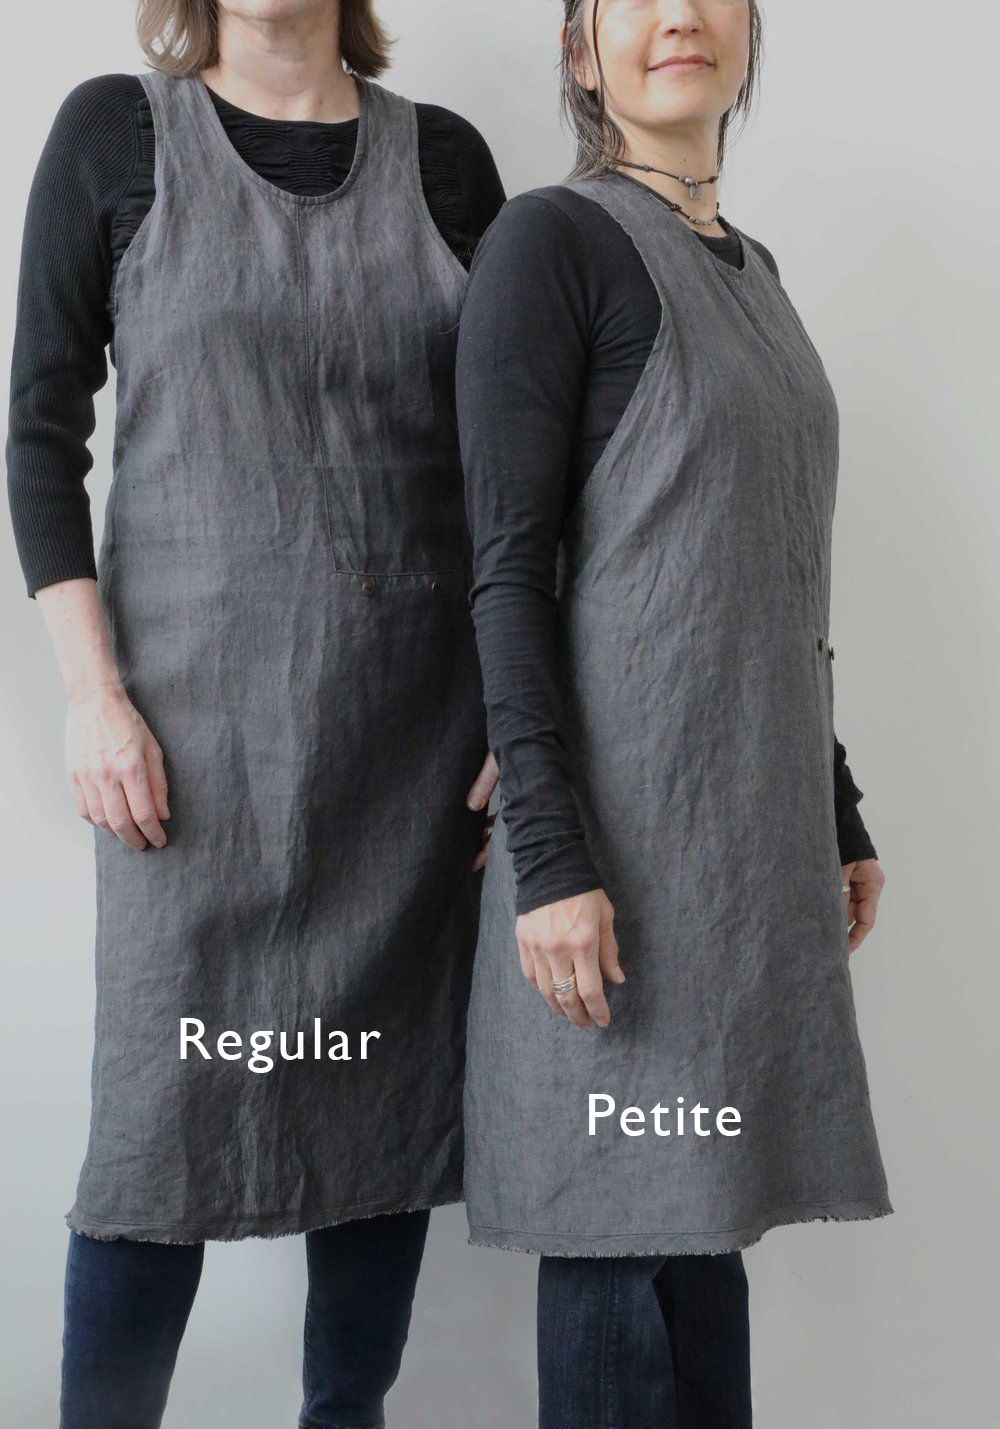 "(The model on the left is 5'6"" tall. She is wearing our Regular apron. The model on the right is 5'2"". She is wearing our Petite apron)"